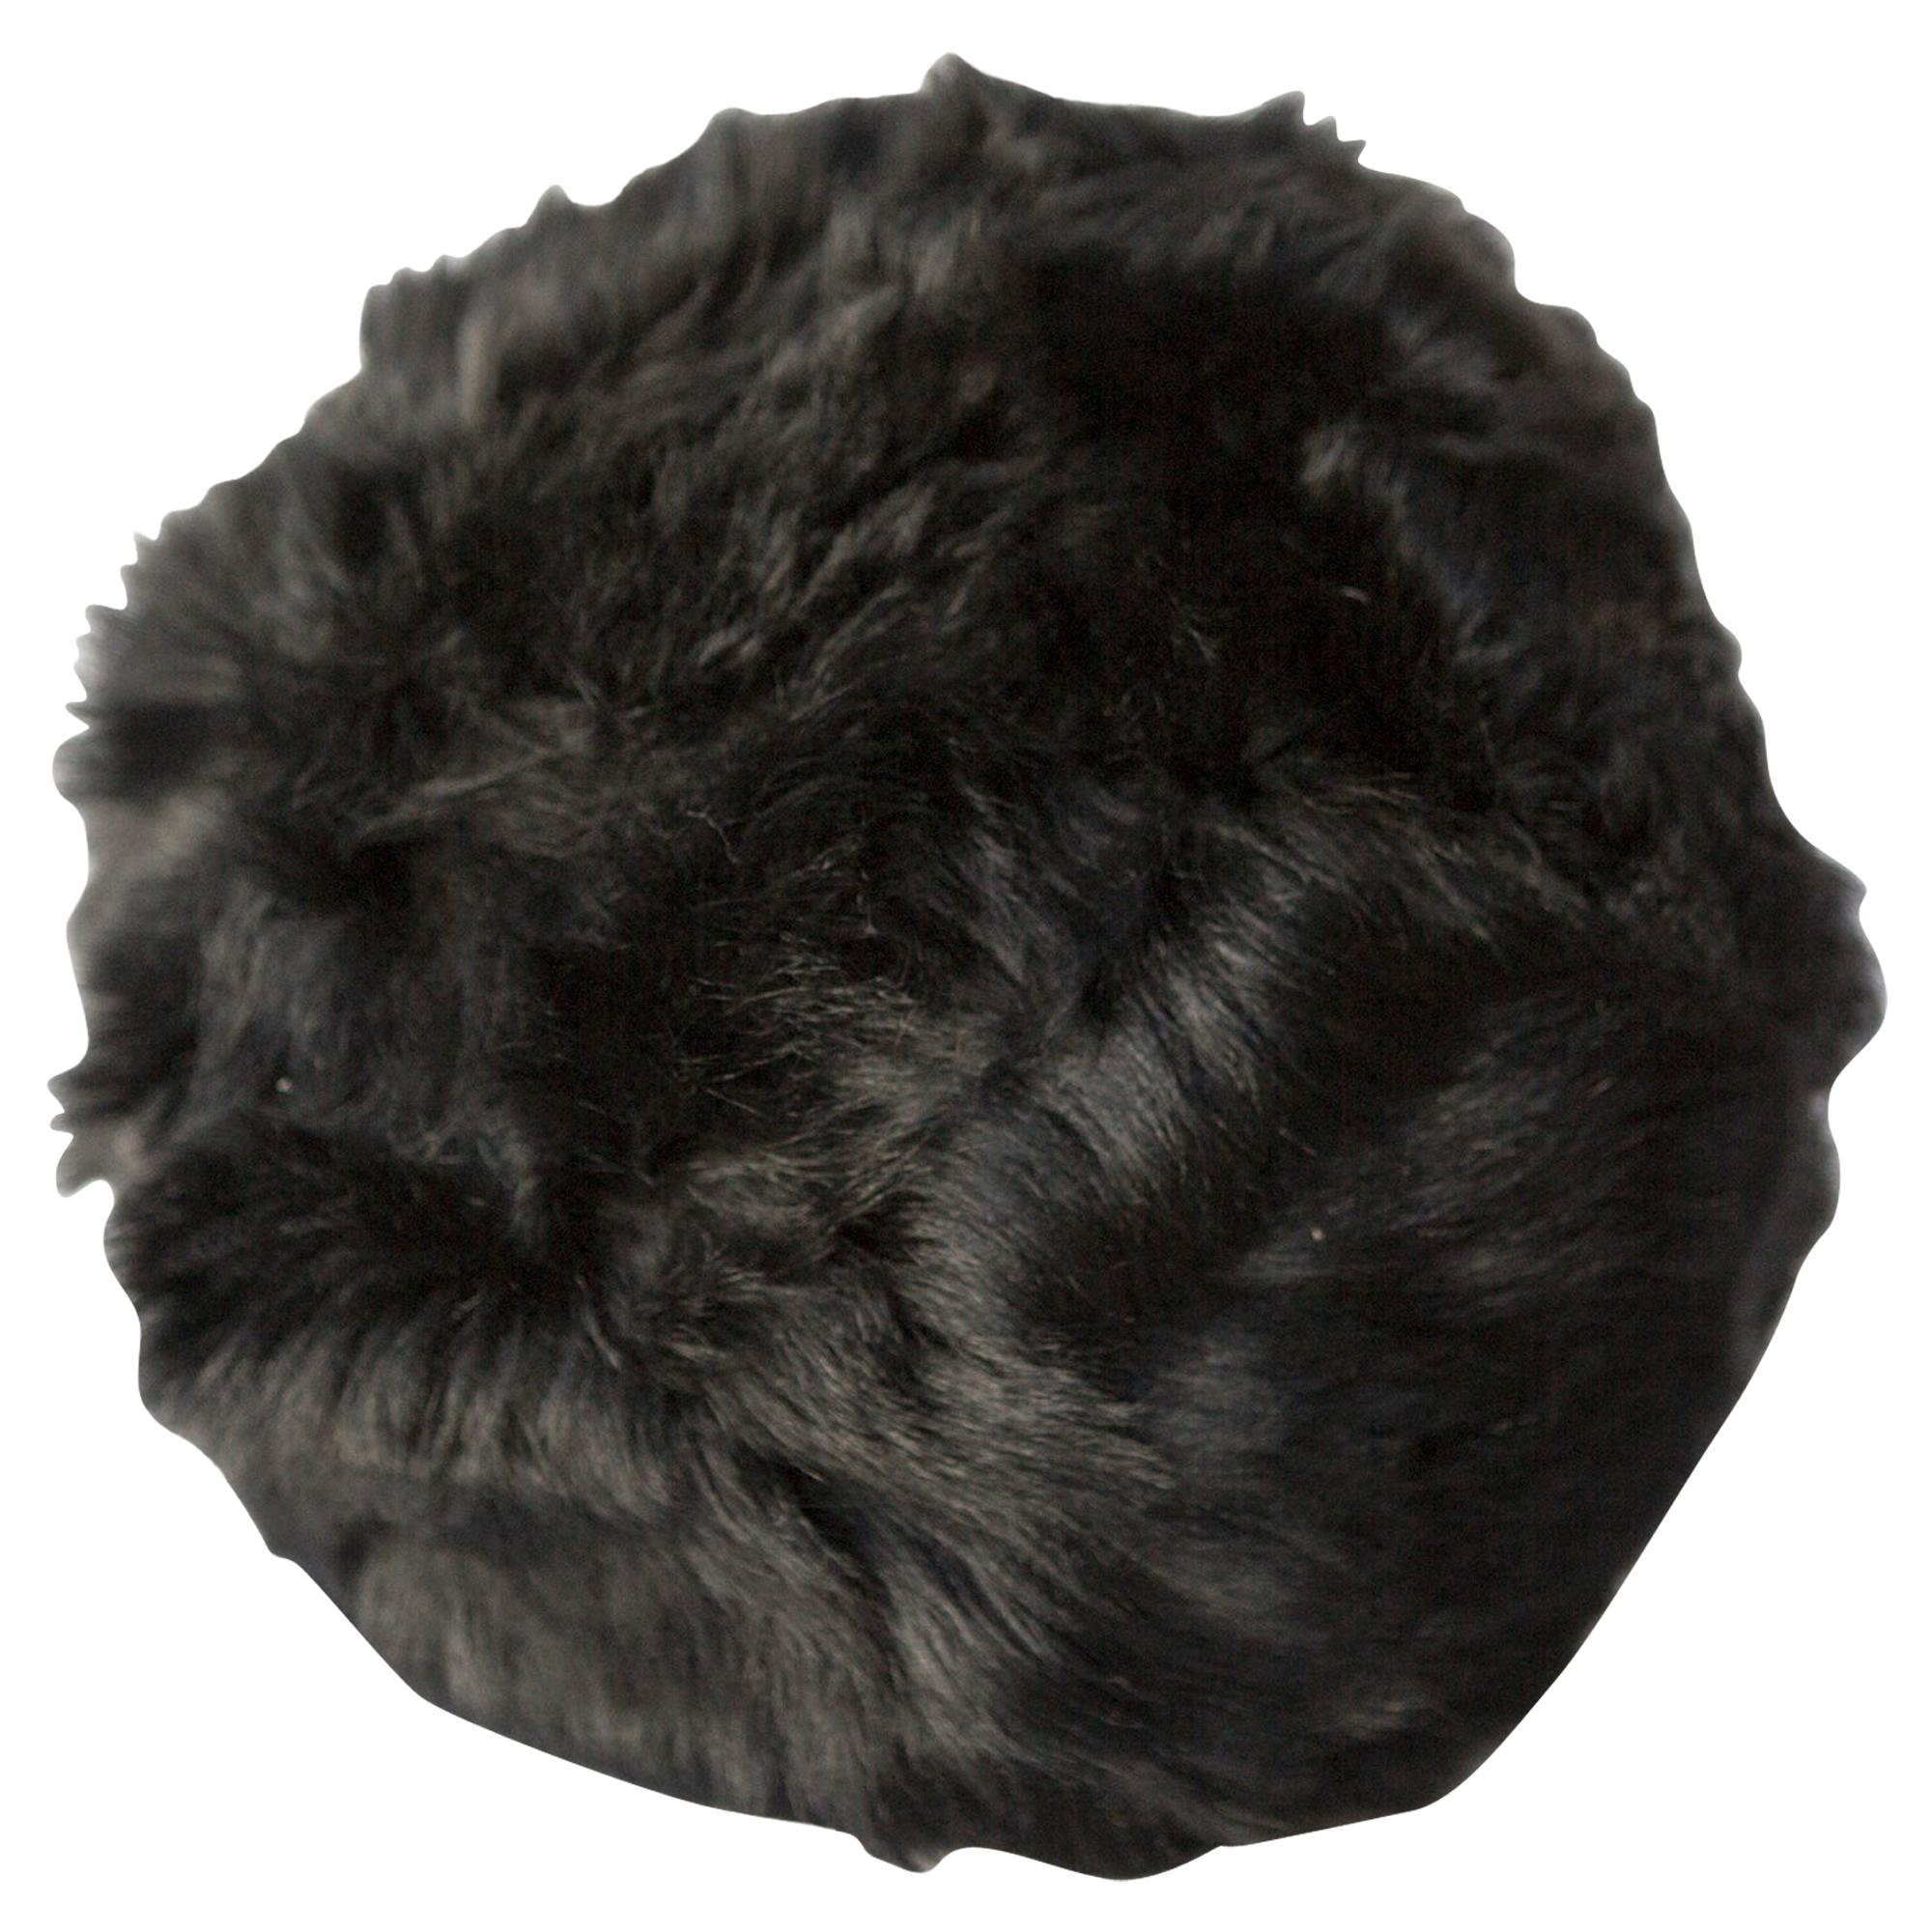 Fur Snowball Pillow - Black